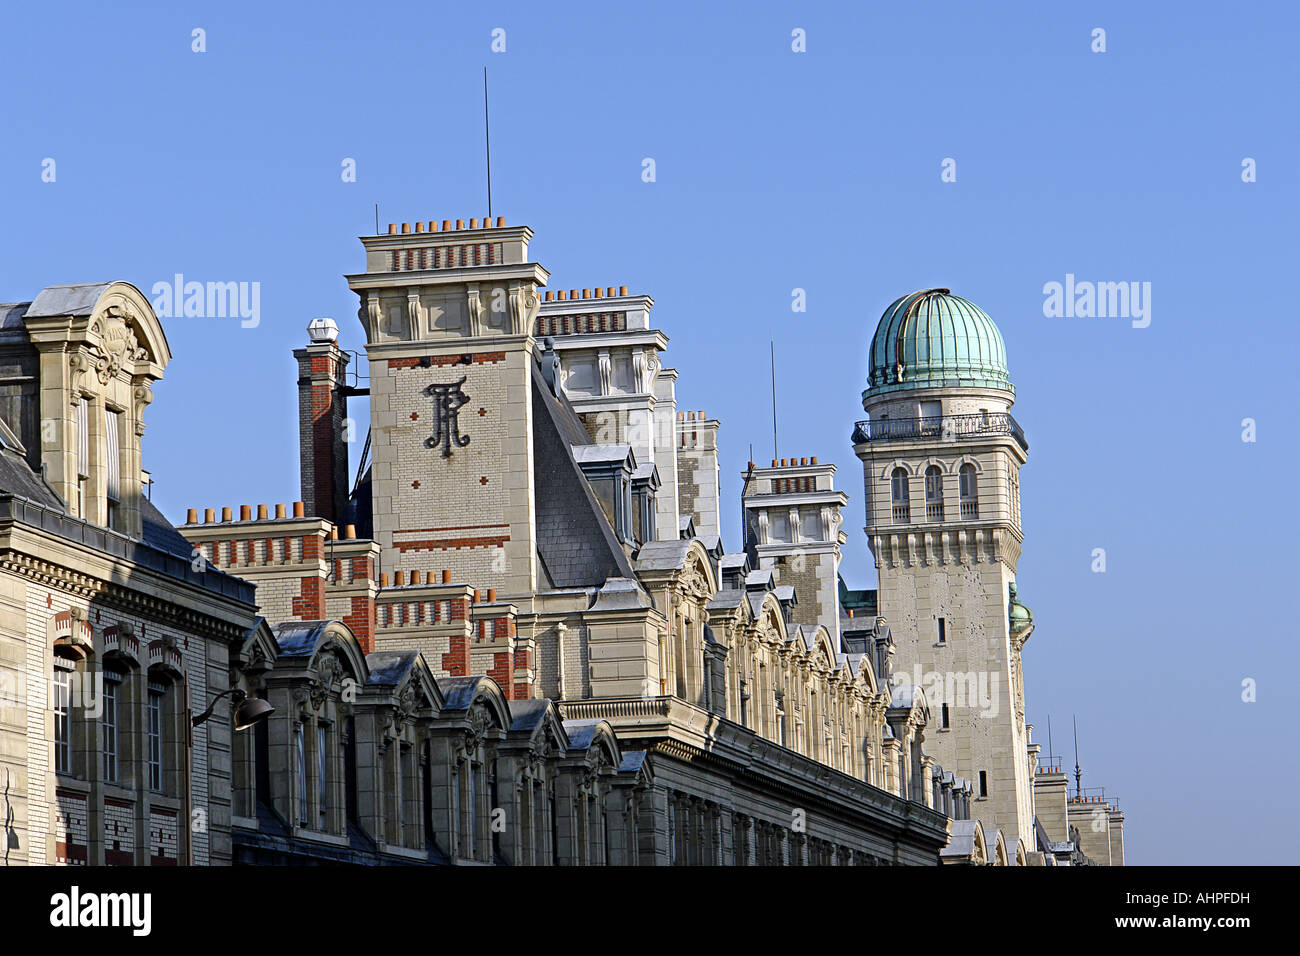 Roofs of Sorbonne university in Paris France - Stock Image